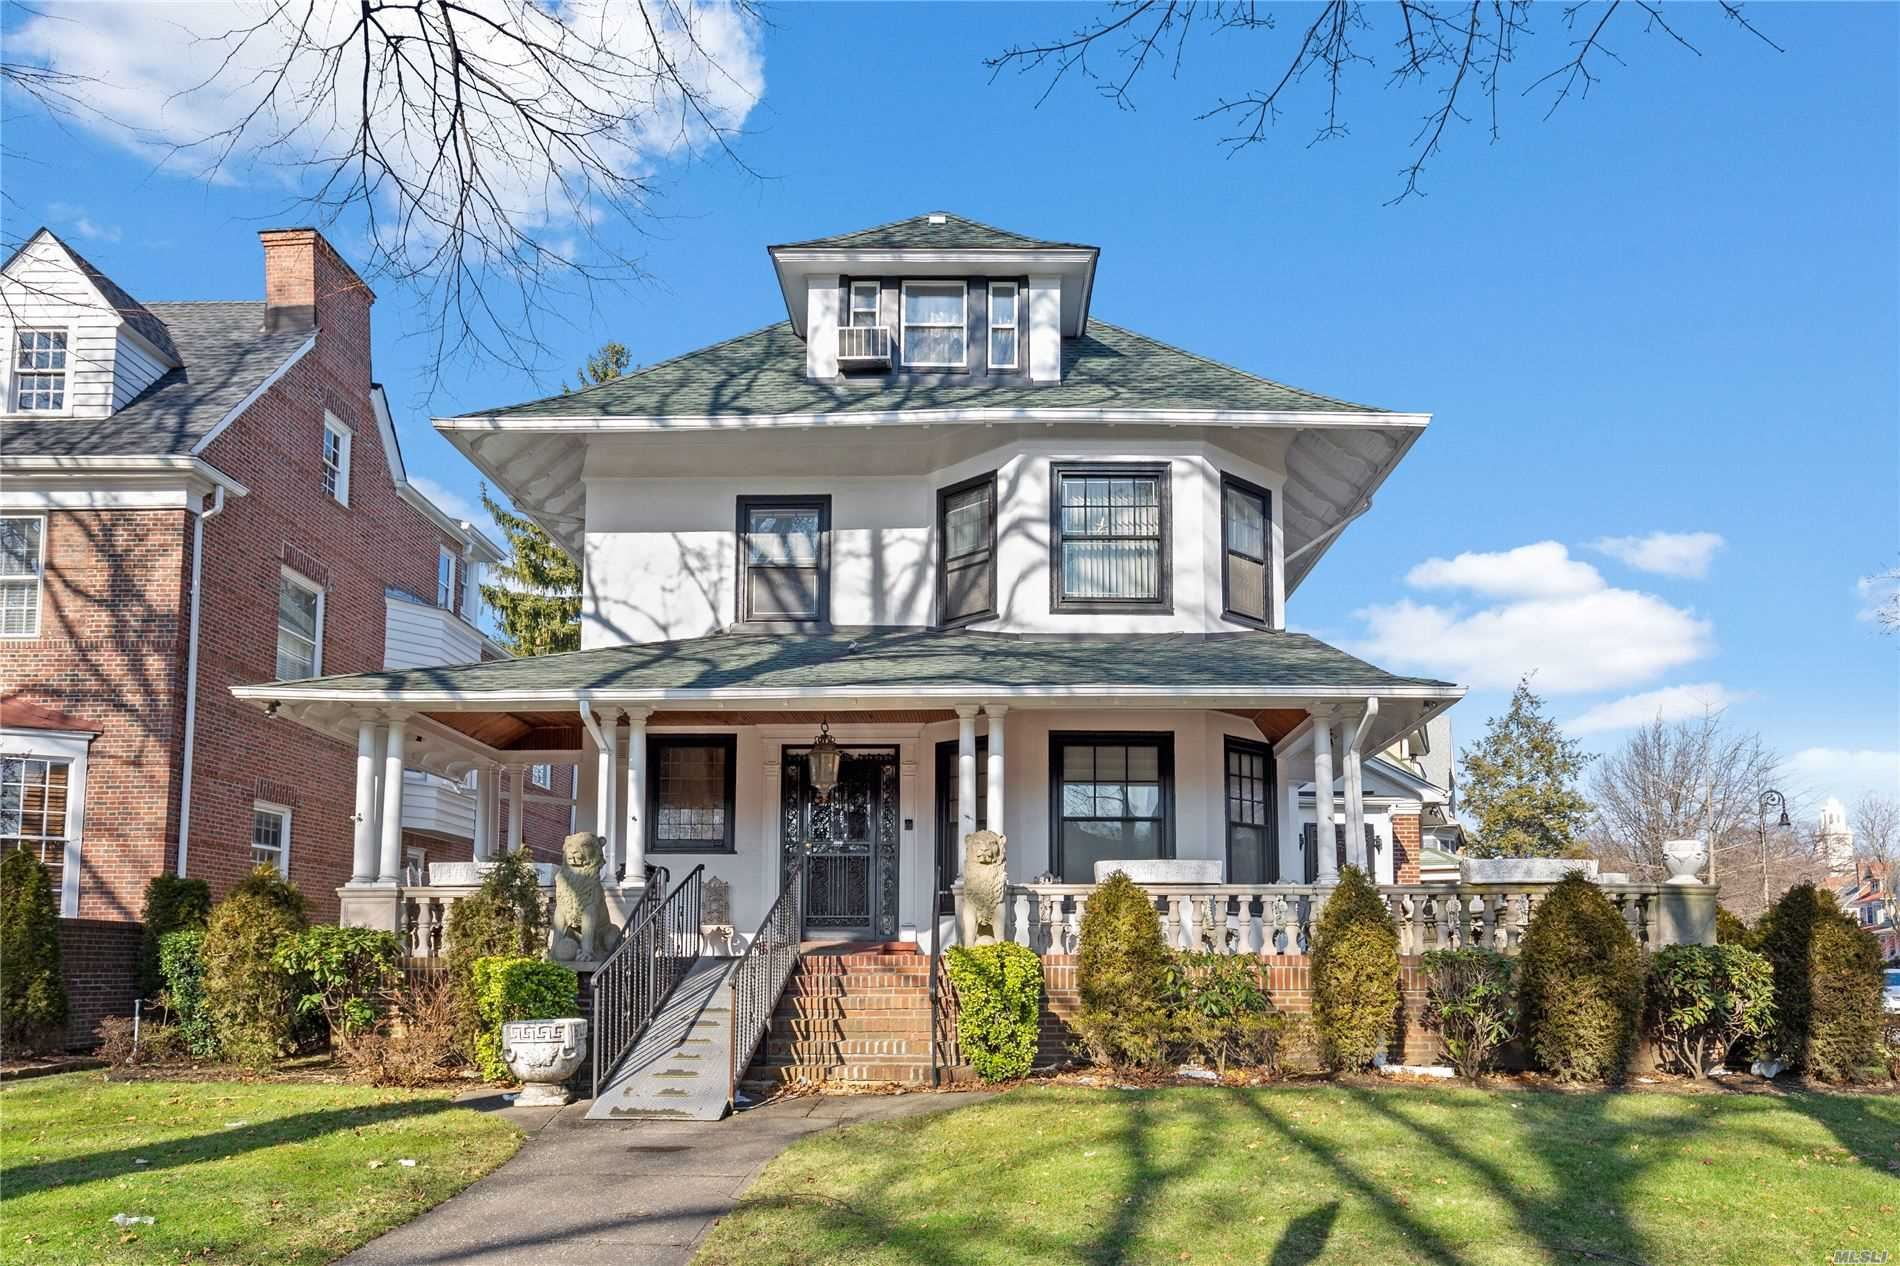 1721 Ditmas Avenue, Brooklyn, NY 11226 - MLS#: 3193304